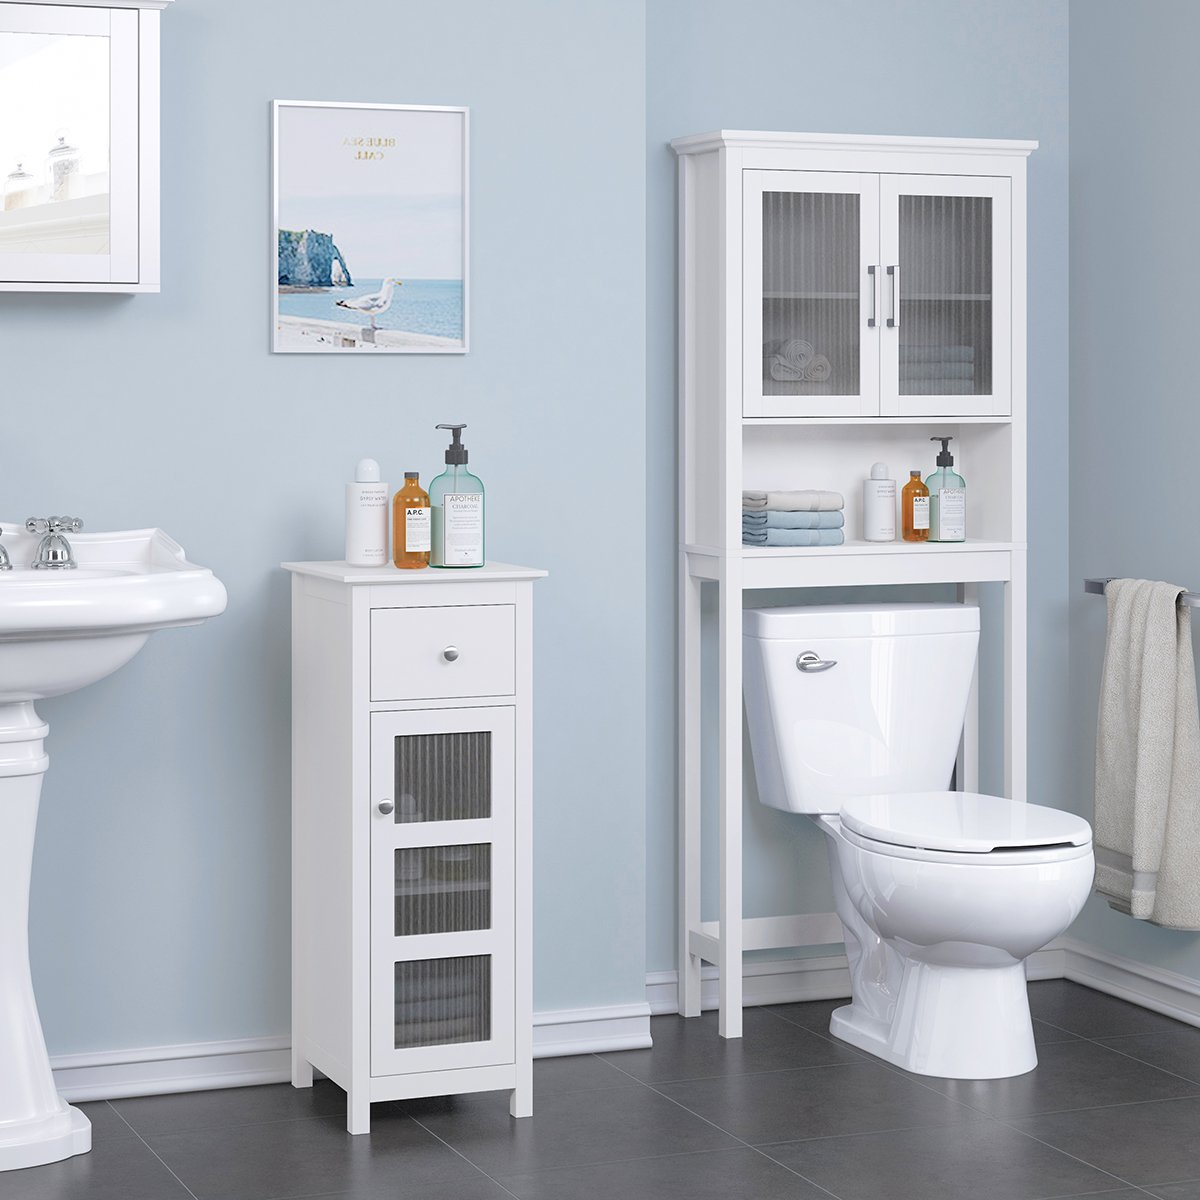 Amazon.com: Spirich Home Bathroom Shelf Over The Toilet, Bathroom ...